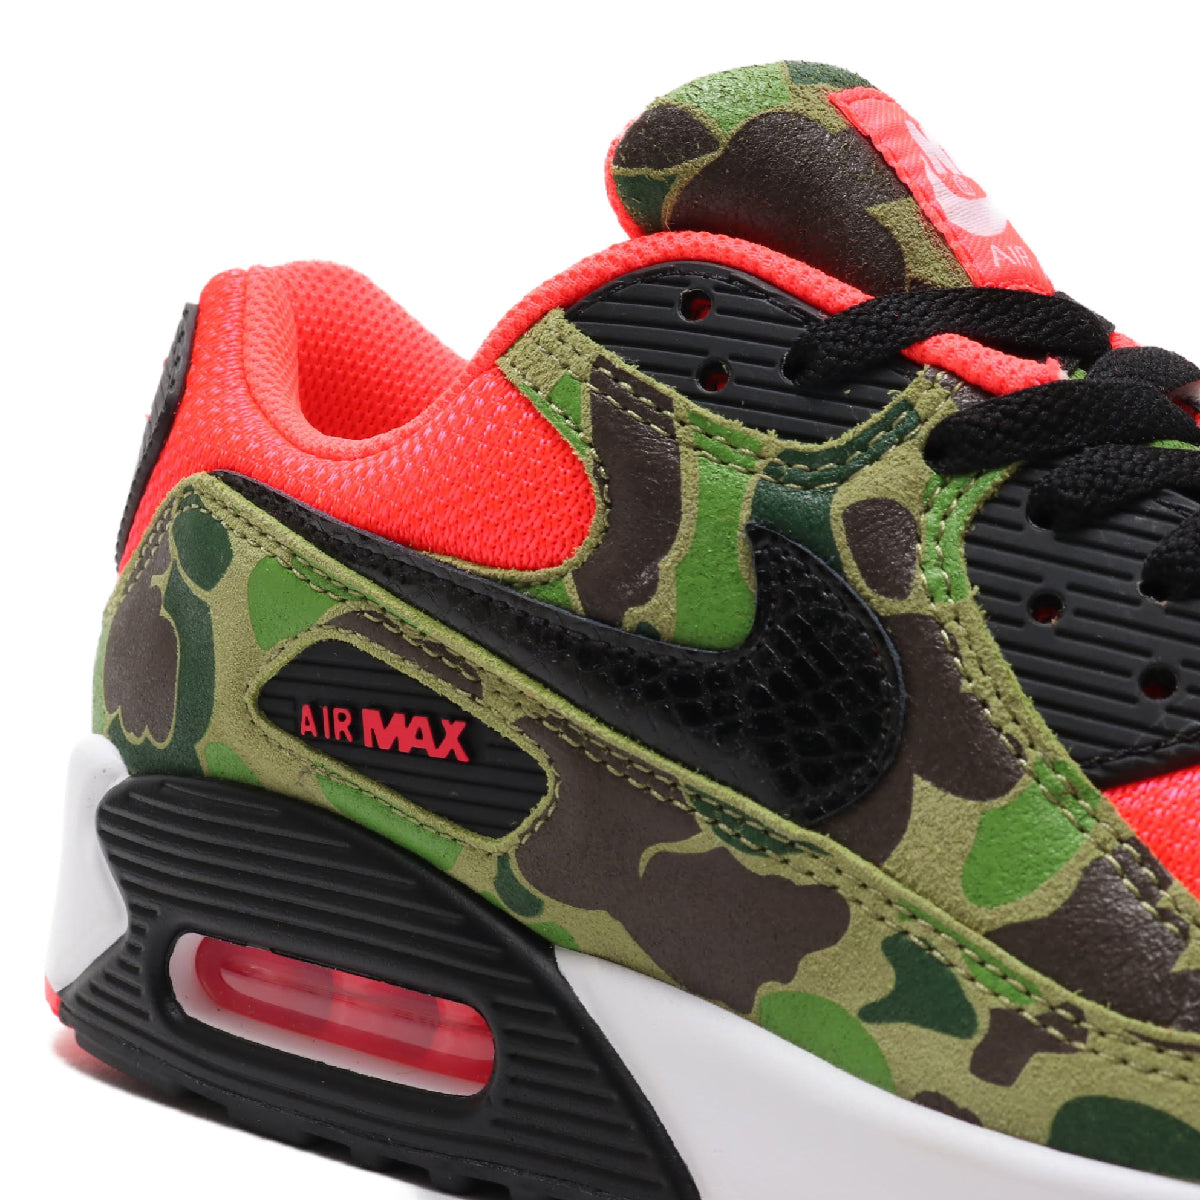 "NIKE AIR MAX 90/2090 ""DUCK CAMO"" PACK"